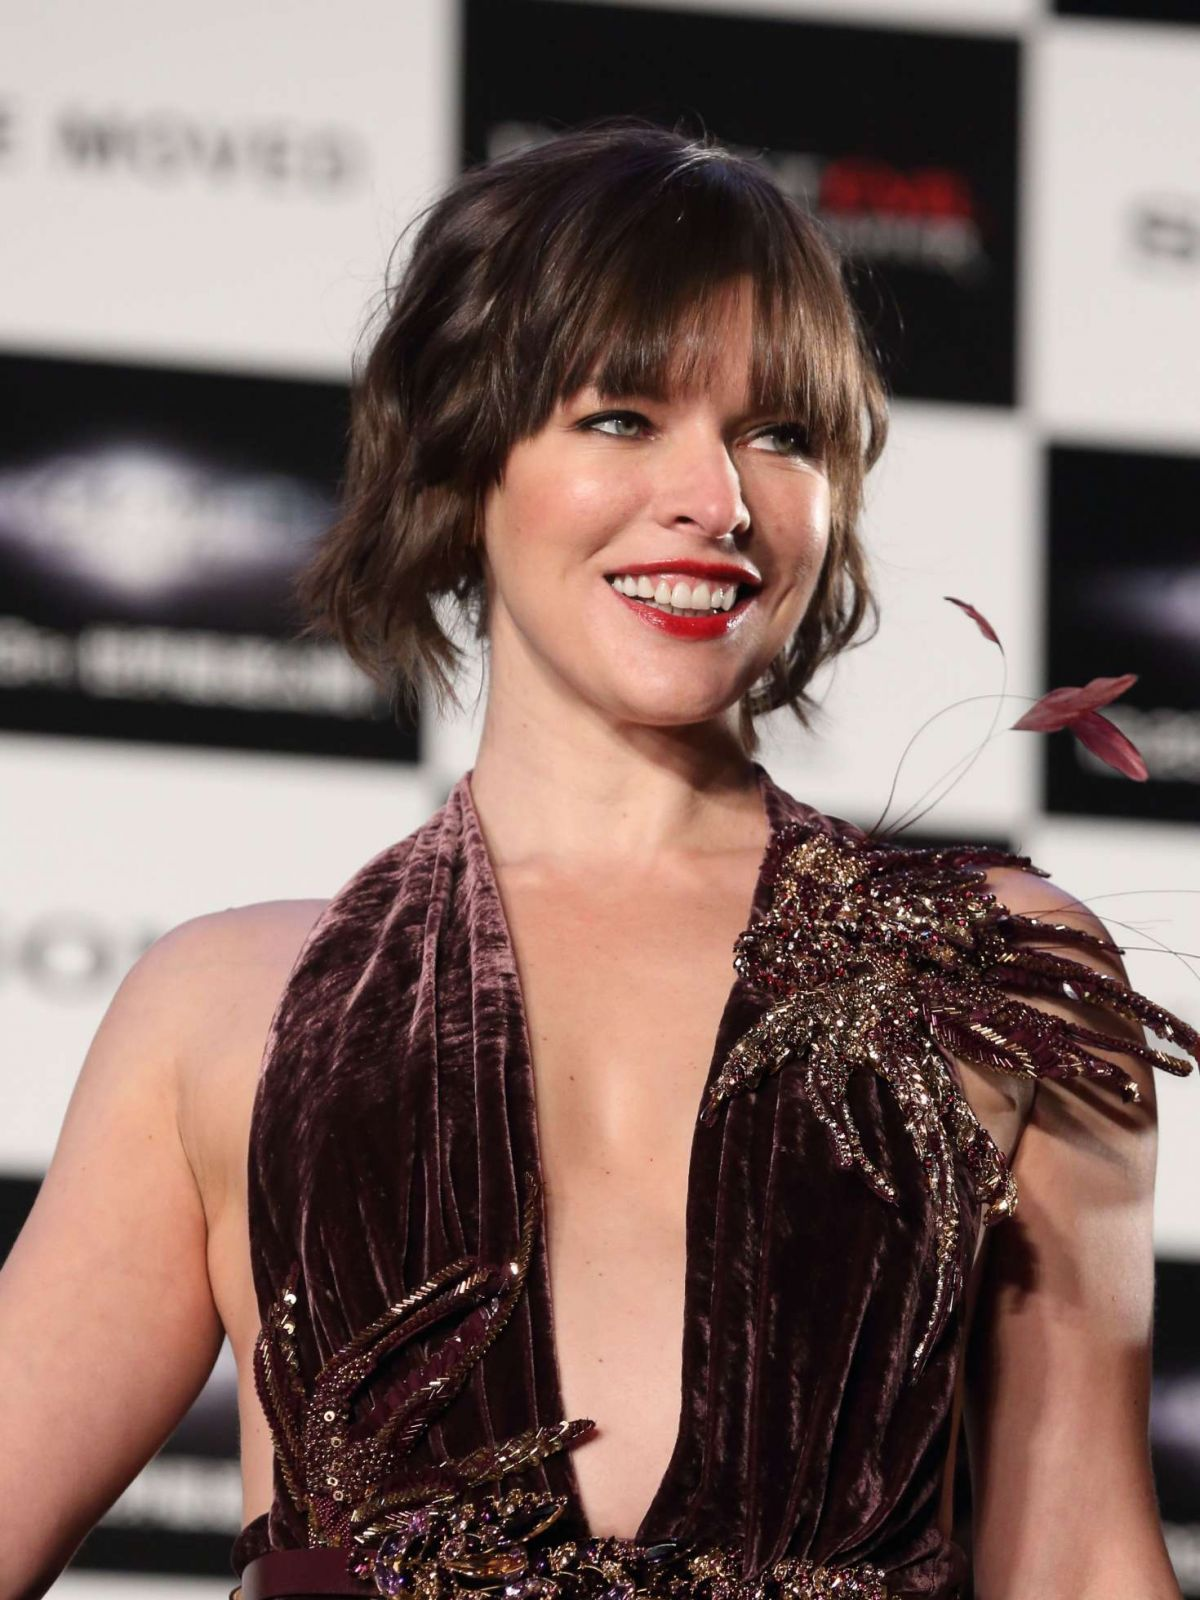 milla-jovovich-resident-evil-the-final-chapter-premiere-in-tokyo-12-13-2016_1